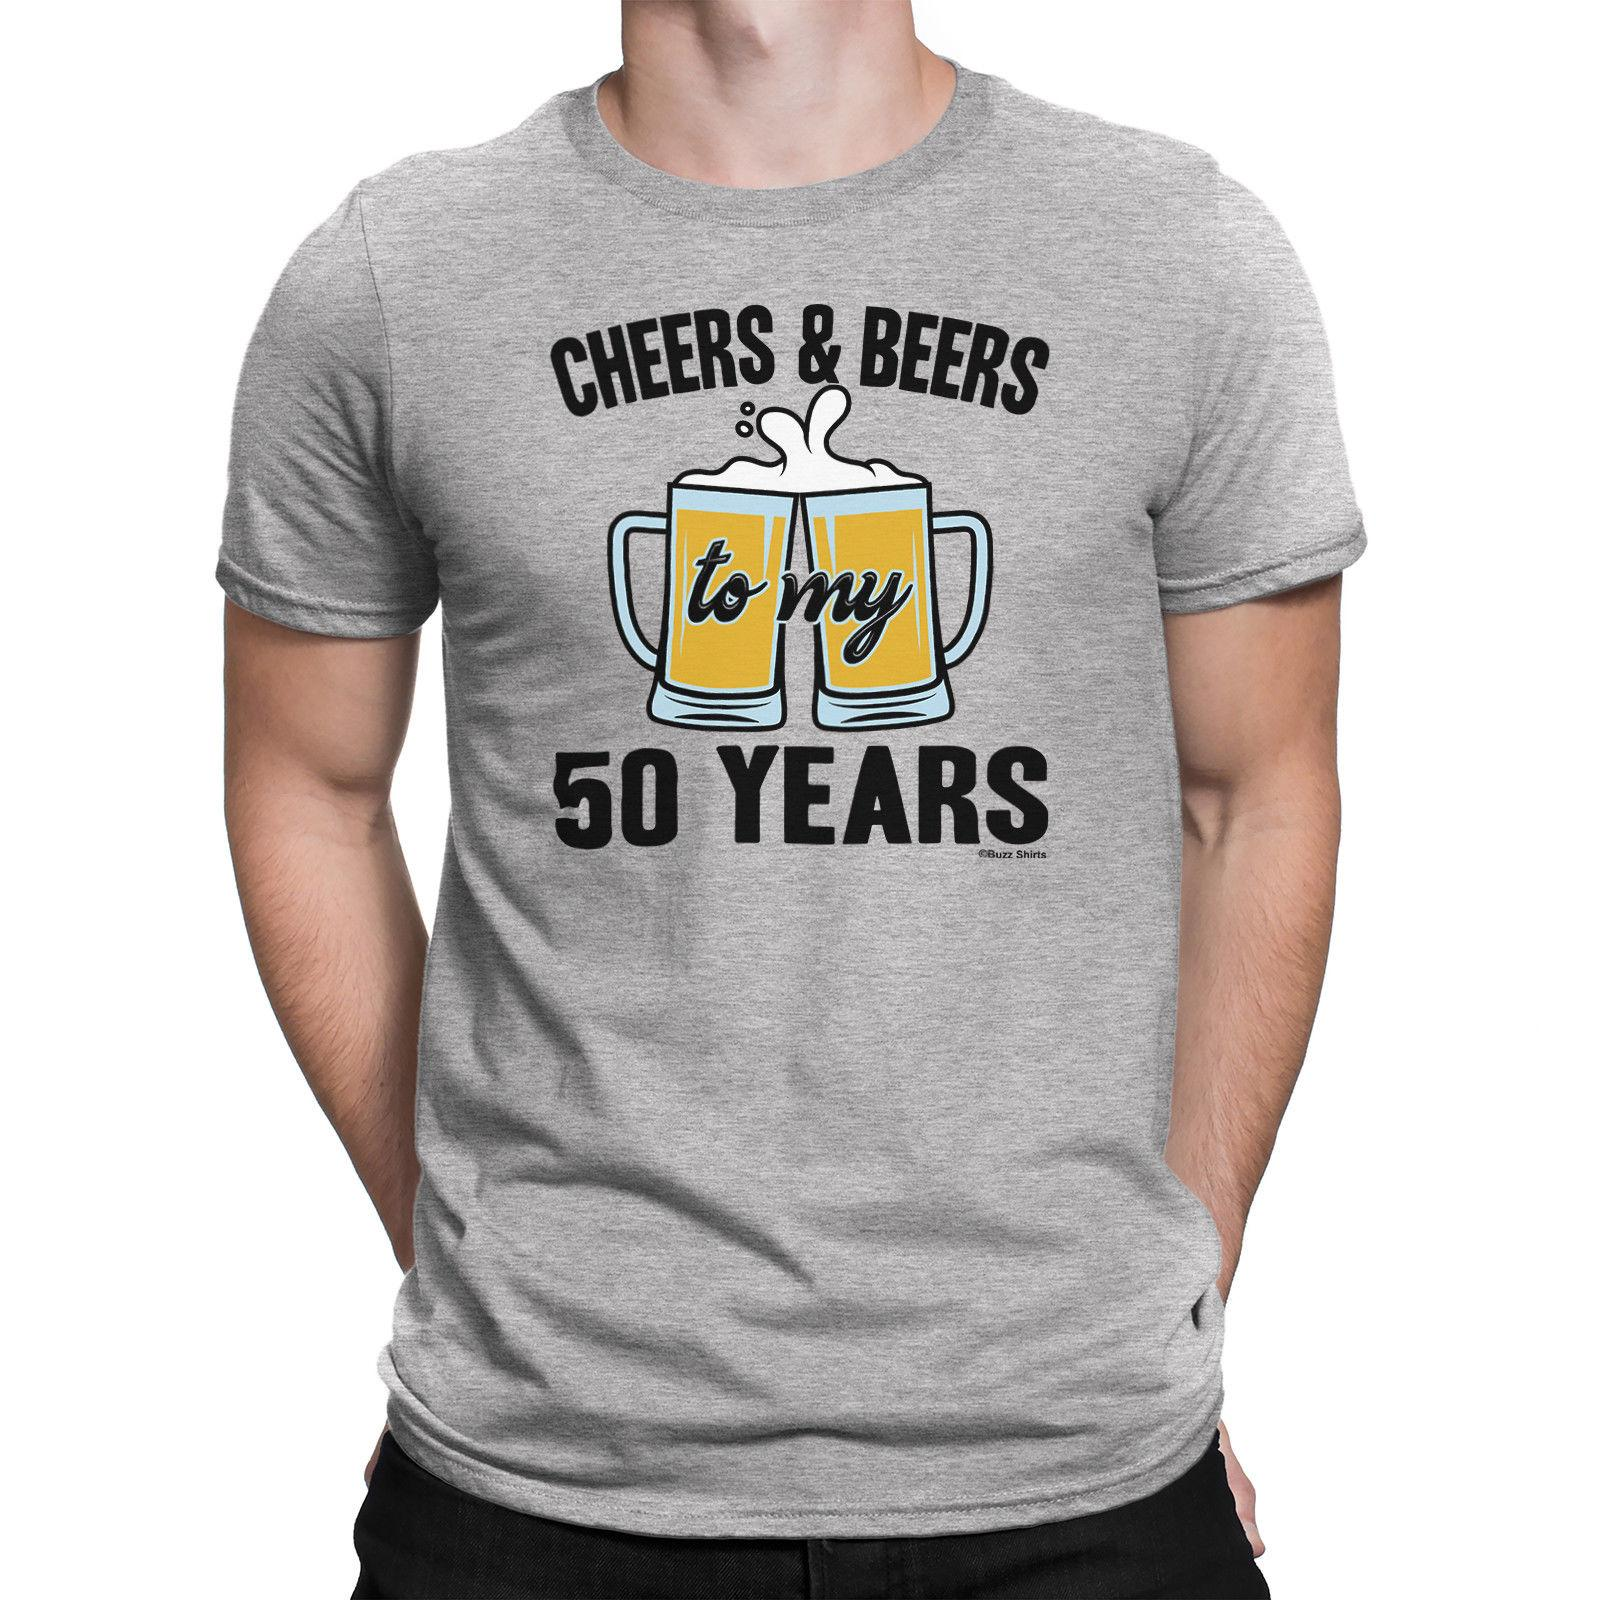 Details Zu Mens 50th BIRTHDAY TShirt CHEERS And BEERS To 50 Years Old Gift Fifty Random T Shirts Poker From Lukehappy14 1296